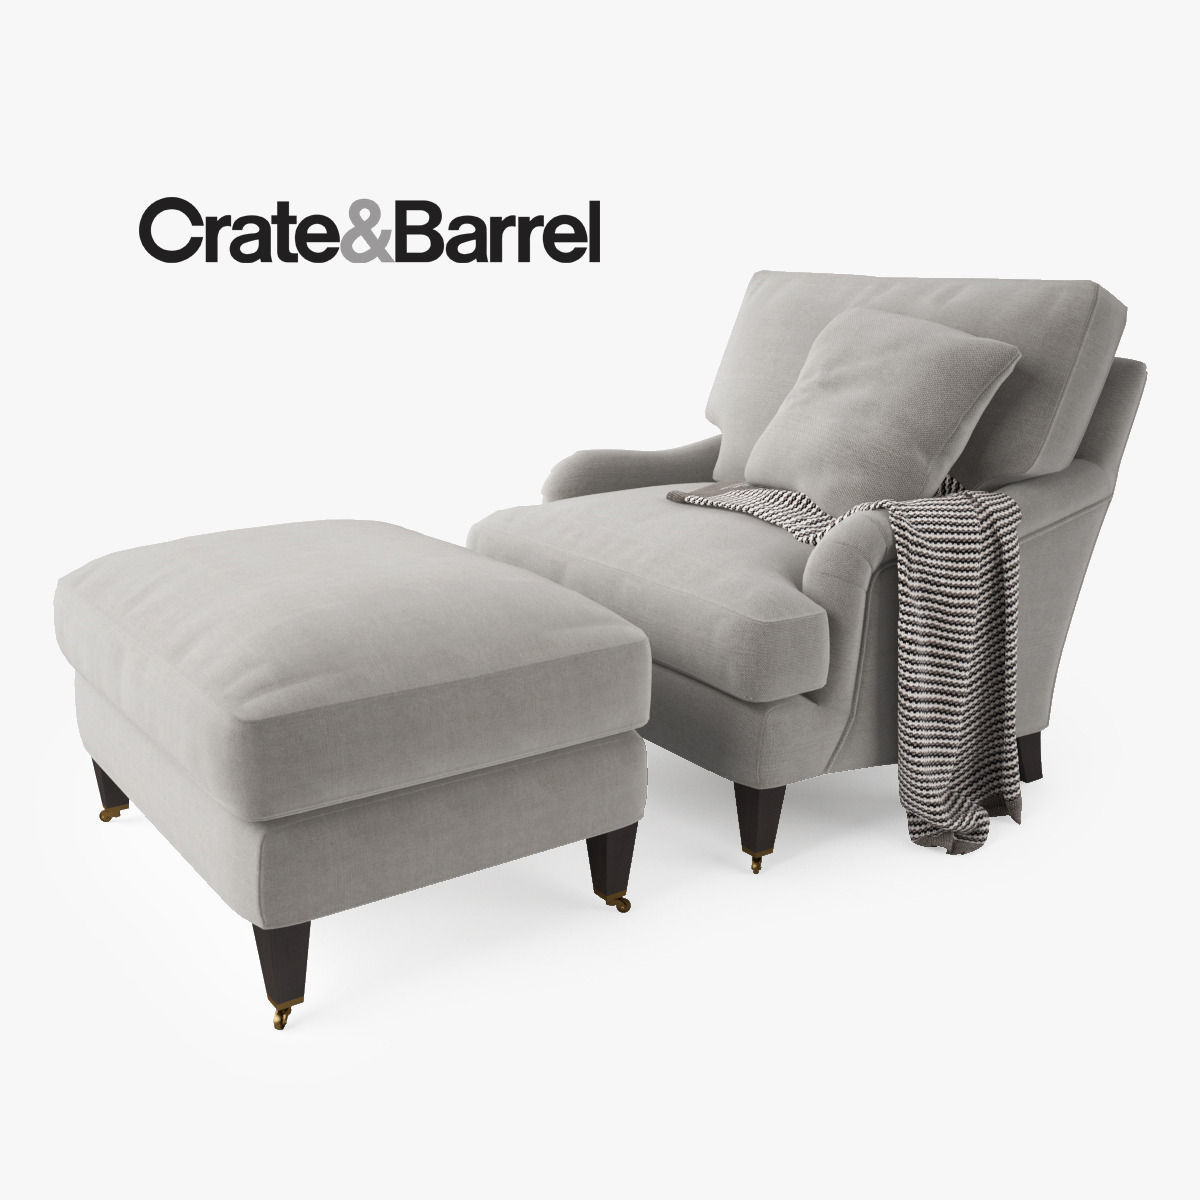 Crate And Barrel Essex Chair And Ottoman 3d Model Max Obj Fbx Mtl 1 ...